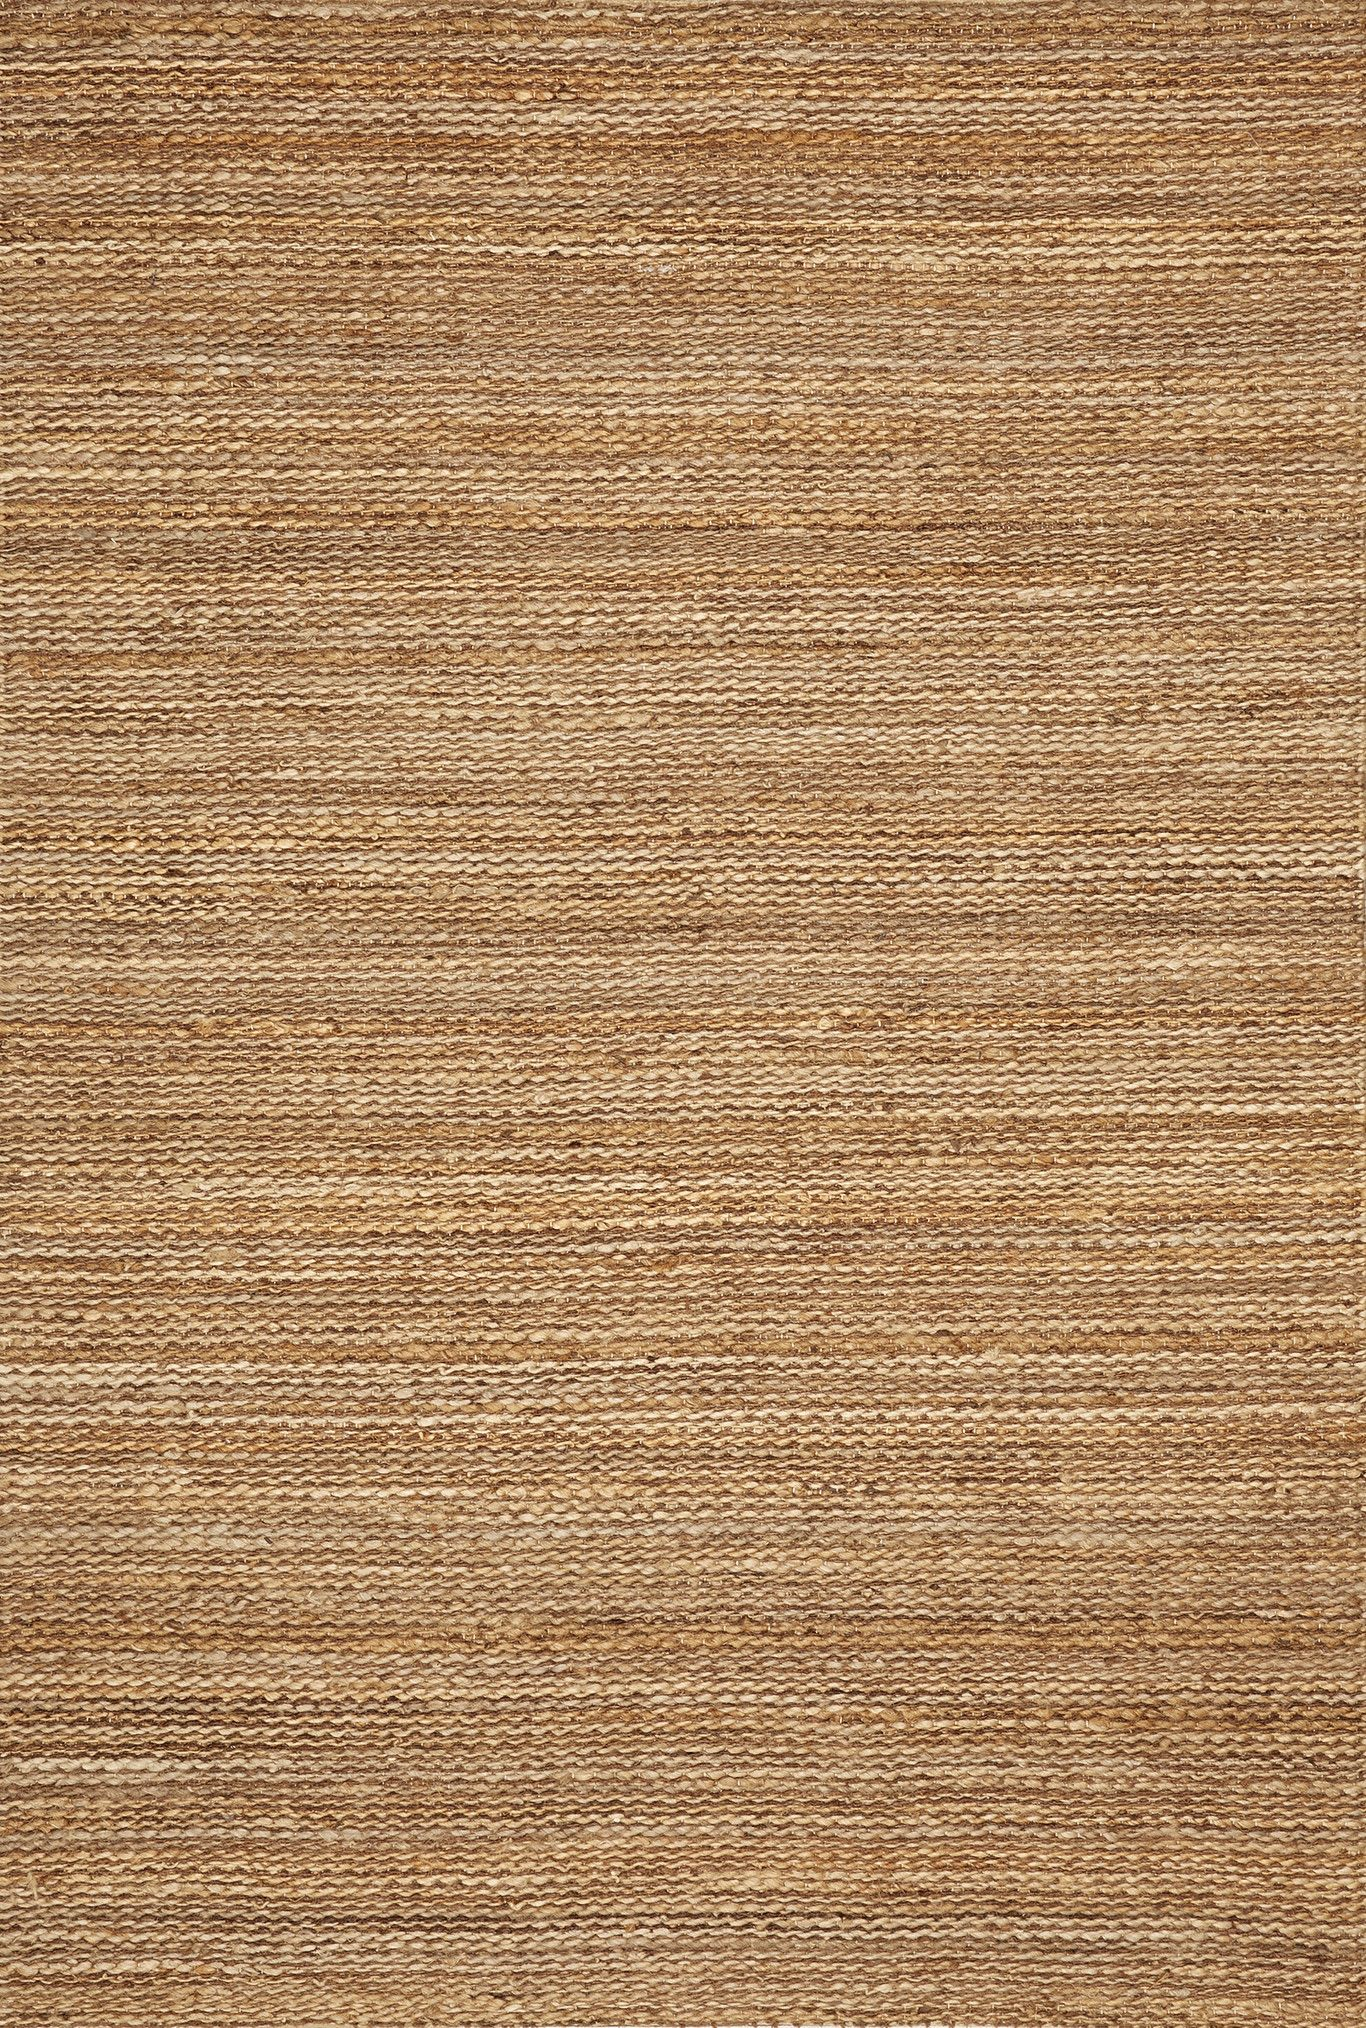 Another Option When Considering A Solid Color Rug Is Textured Such As The Banyan